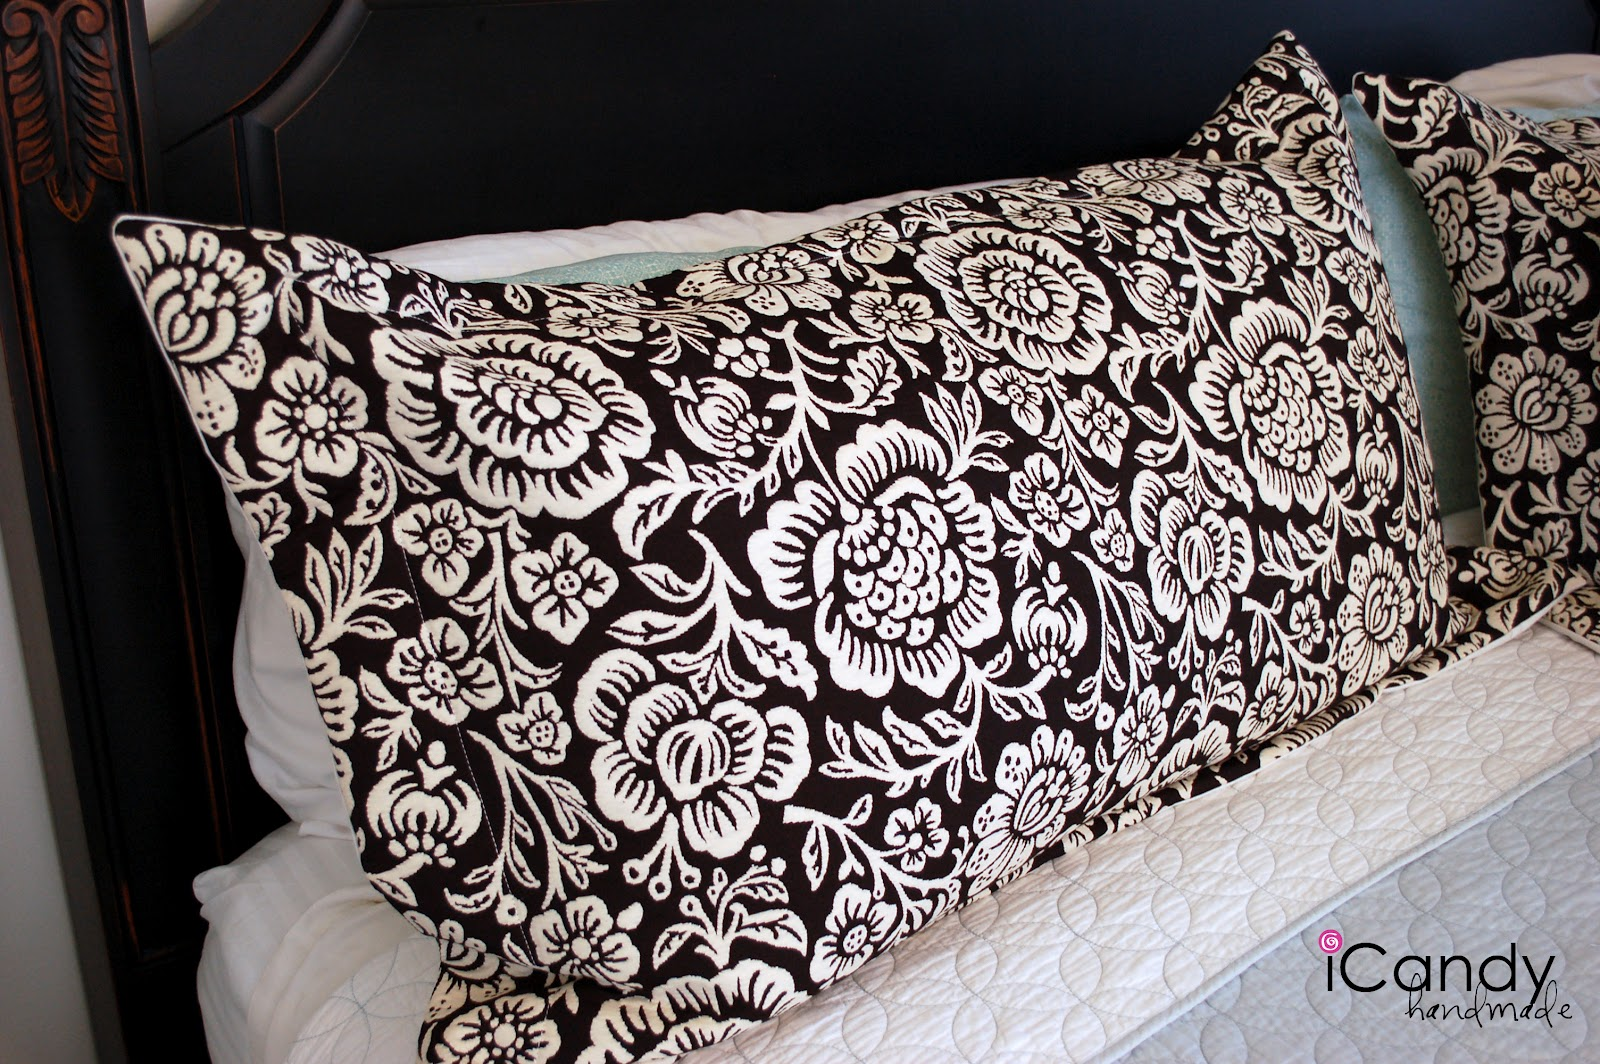 Pillow Sham Patterns Free: DIY King sized Pillow Shams and Bed Makeover   iCandy handmade,